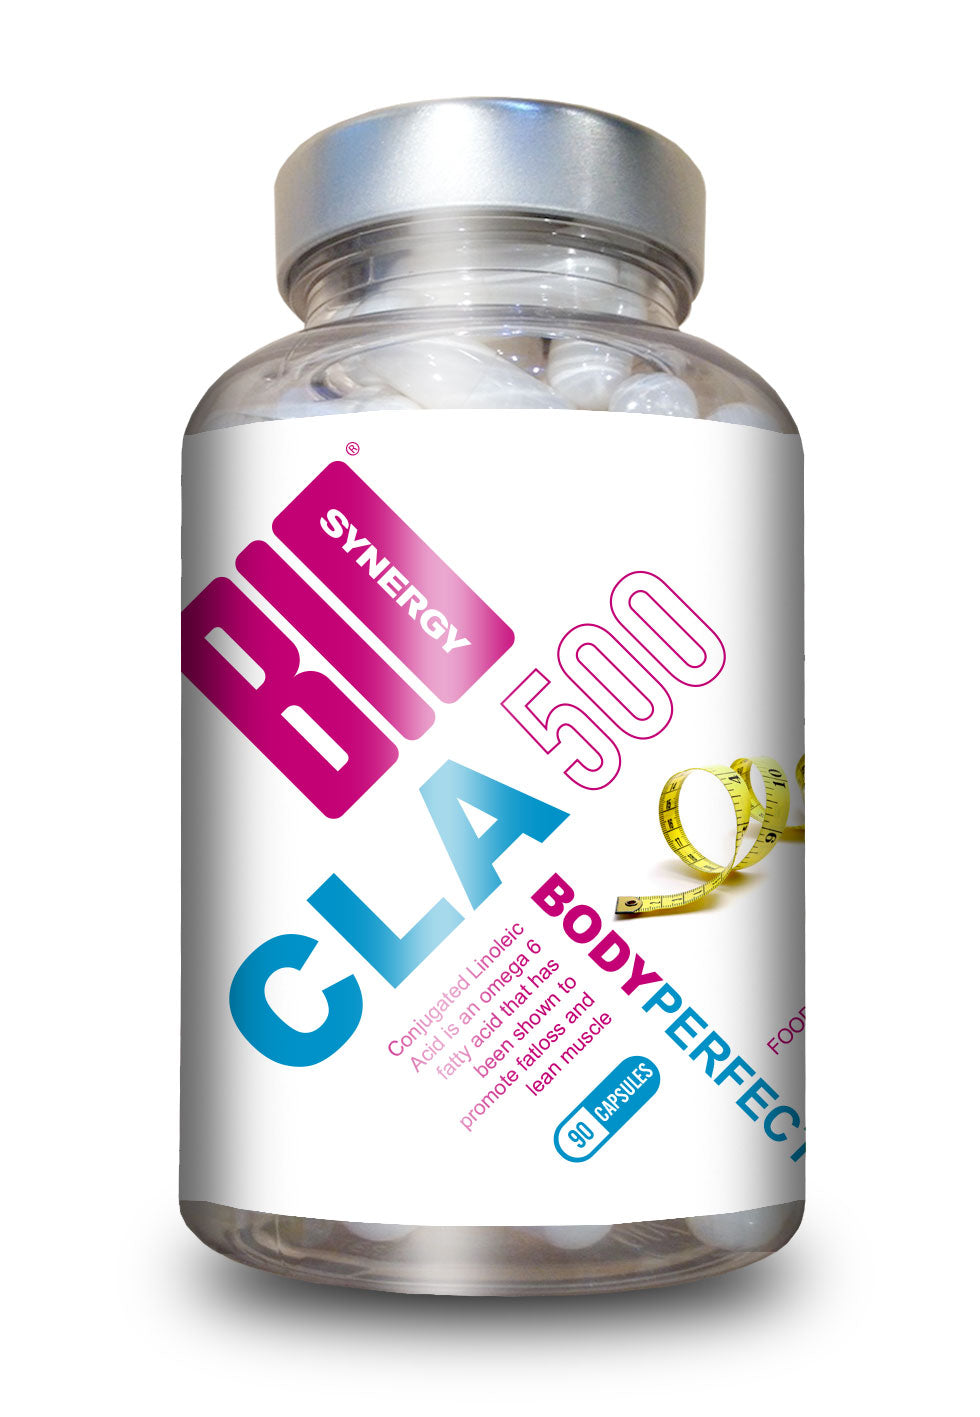 BIO-SYNERGY CLA 500 - FAT BURNER TABLETS - SAVE 10%